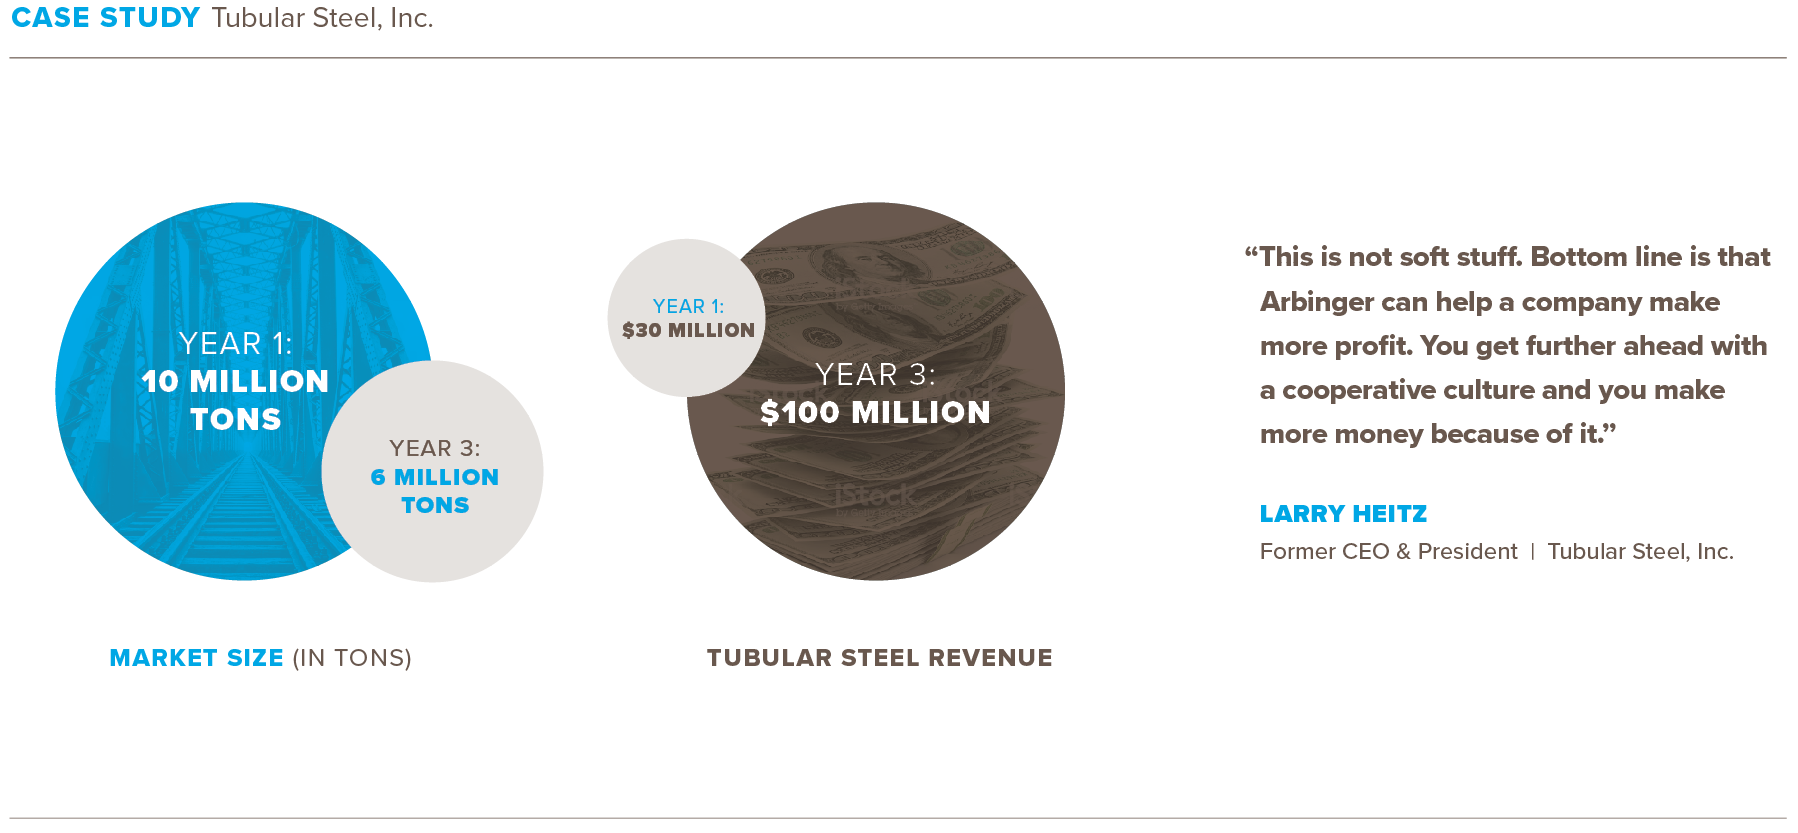 This image describes the results of Arbinger's work with Tubular Steel. During a time when the market for their products decreased from 10 million tons to 6 million tons in three years, the company's revenue grew from $30 million to over $100 million. The image also contains a quote from former Tubular Steel CEO Larry Heitz, who said, 'This is not soft stuff. Bottom line is that Arbinger can help a company make more profit. You get further ahead with a cooperative culture and you make more money because of it.'